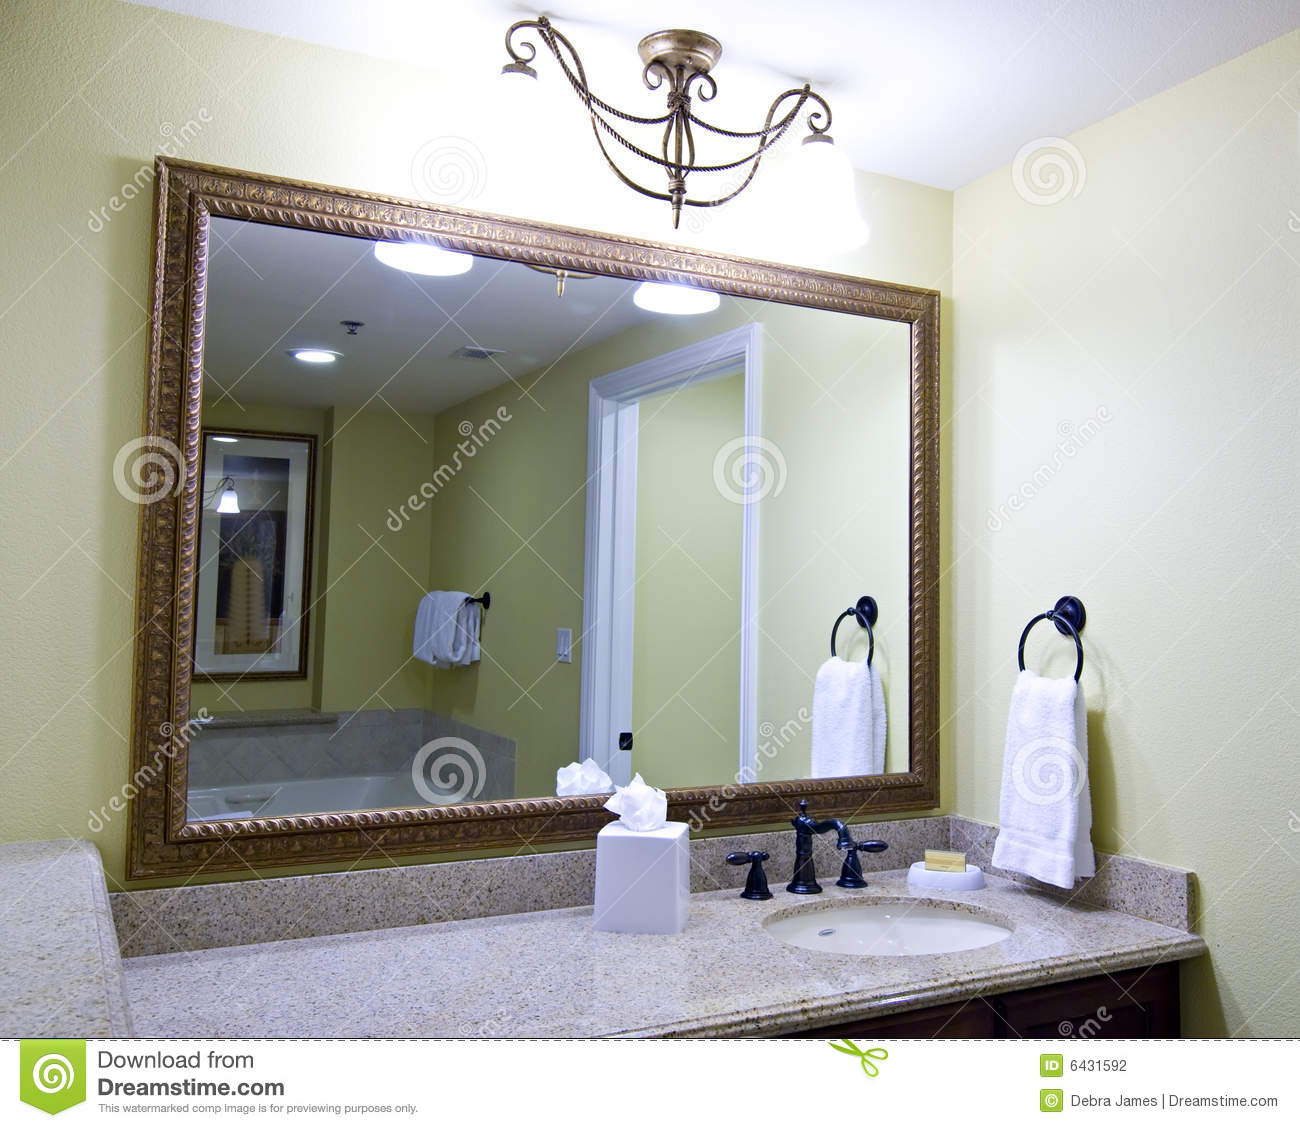 Bathroom sink and mirror - Large Mirror Above Sink Stock Photography